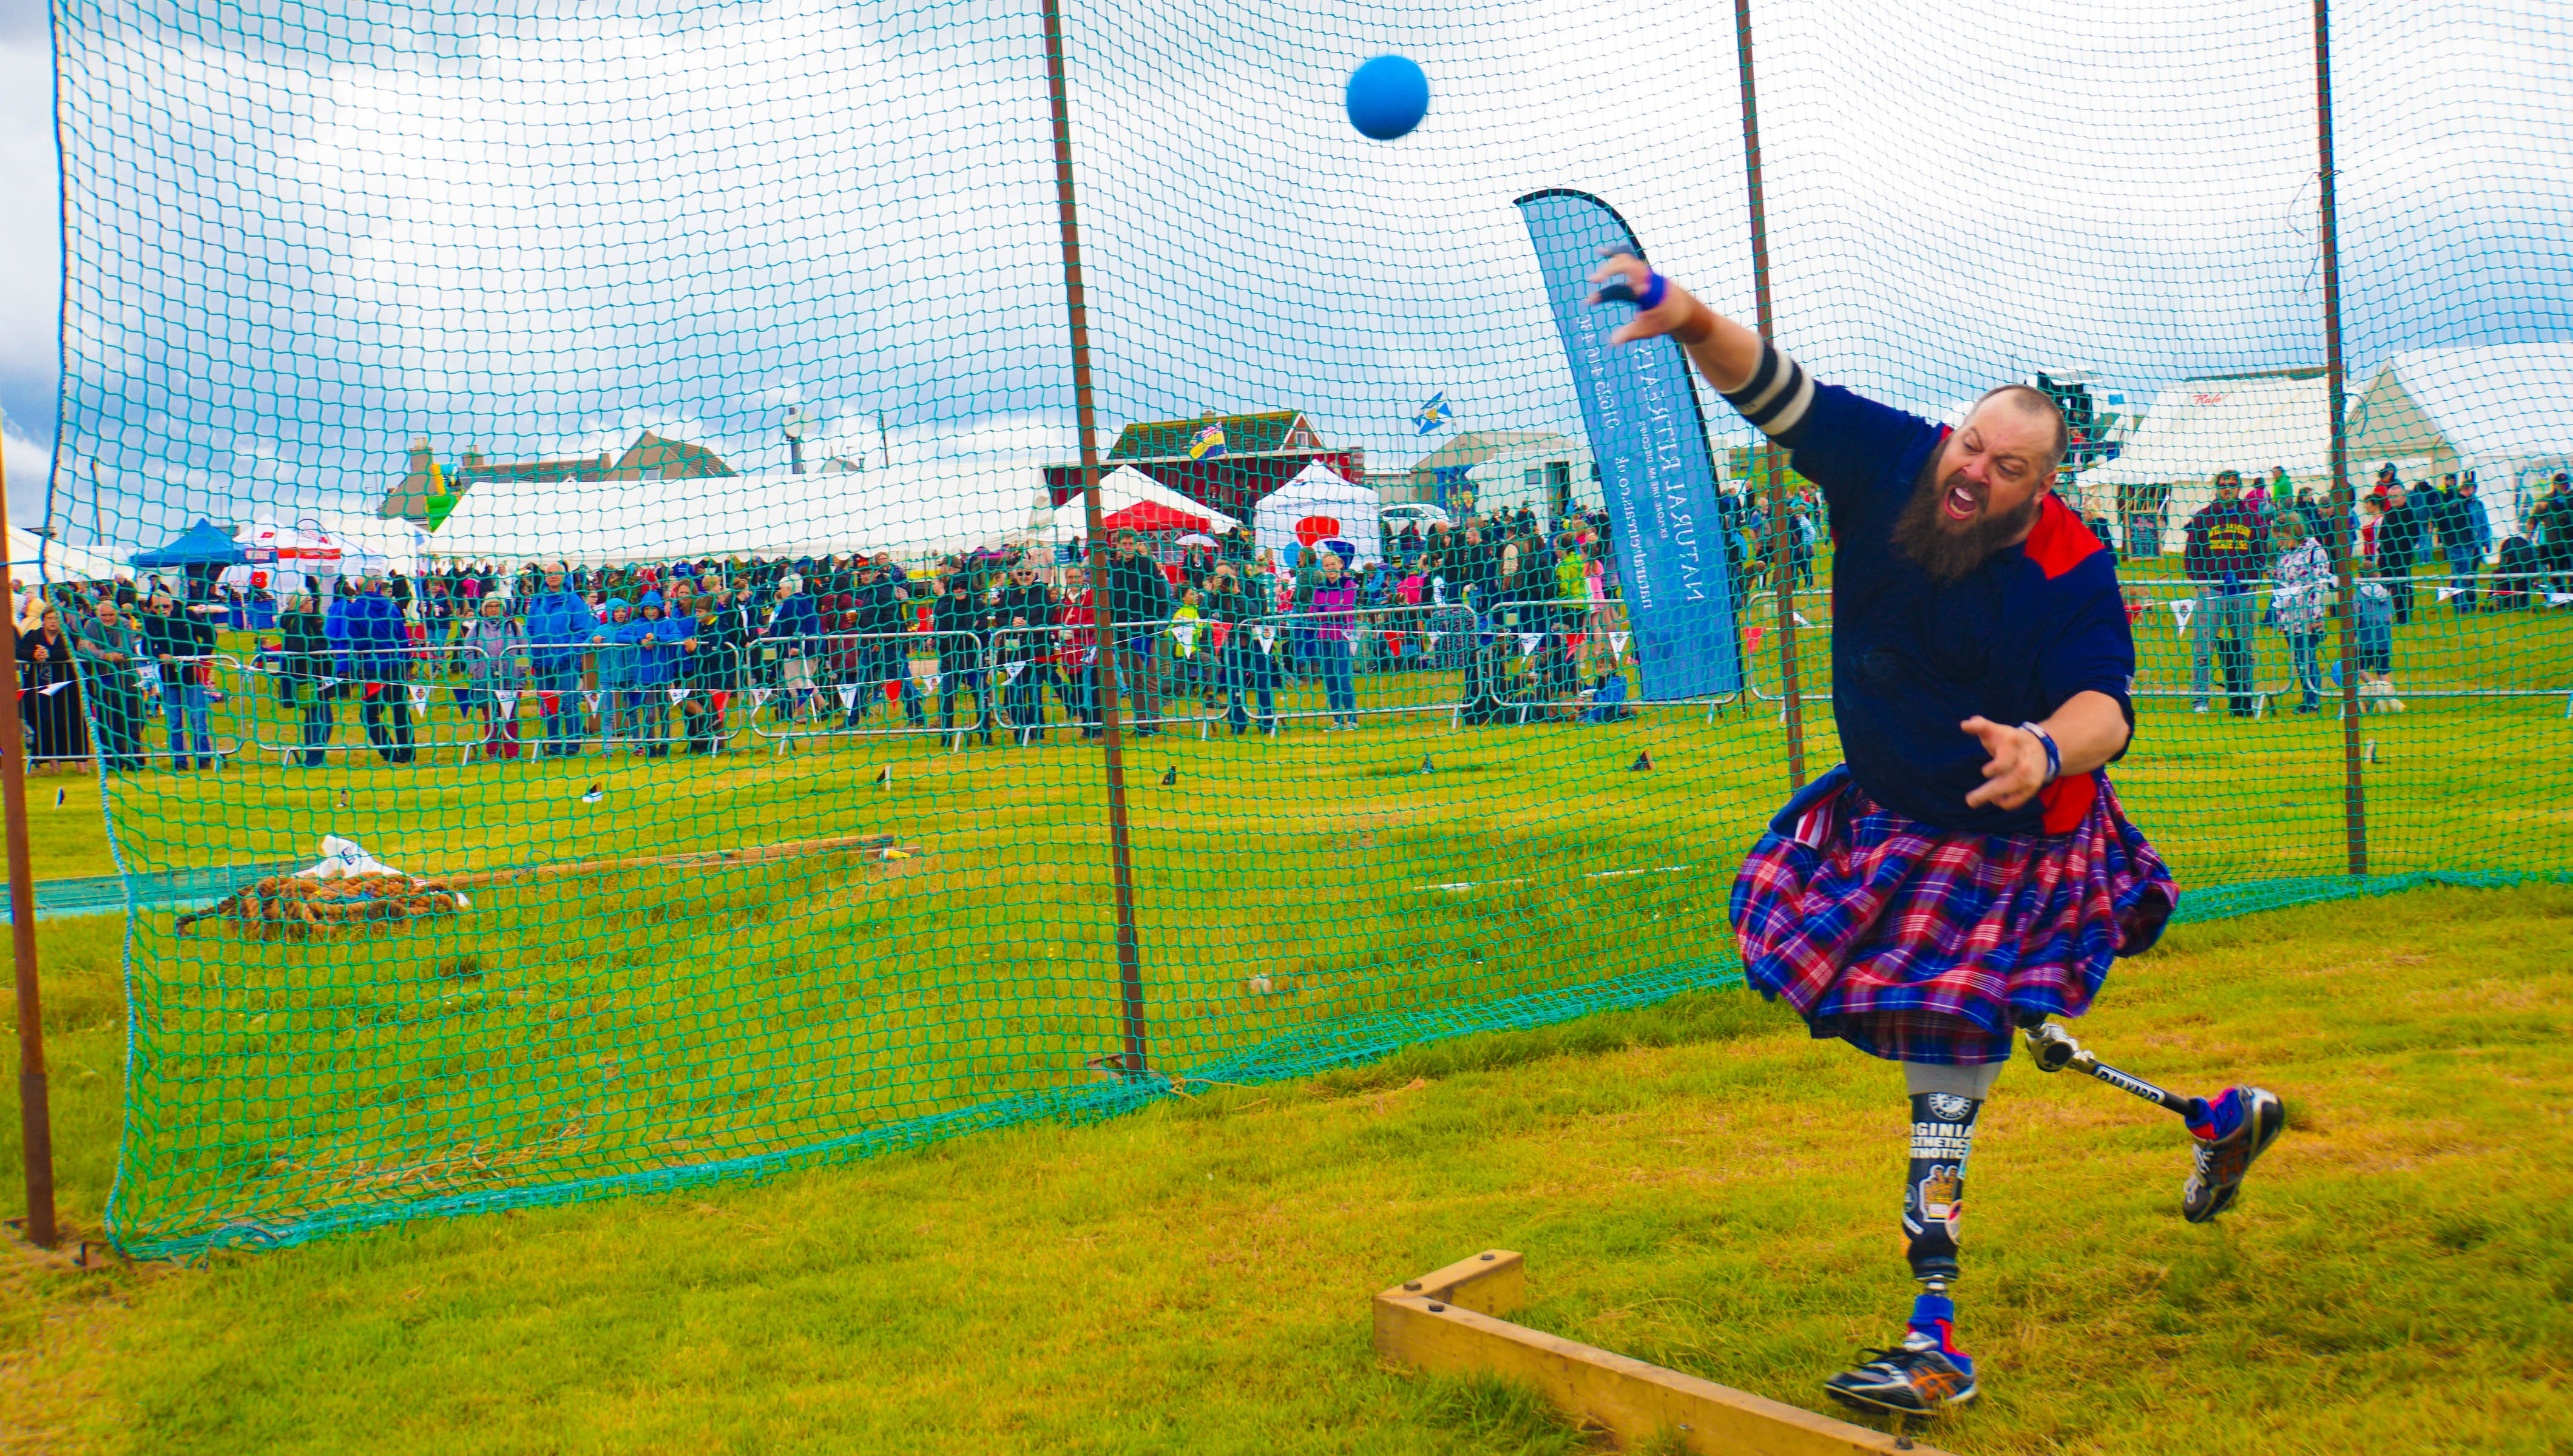 The Mey Highland Games takes place next month.